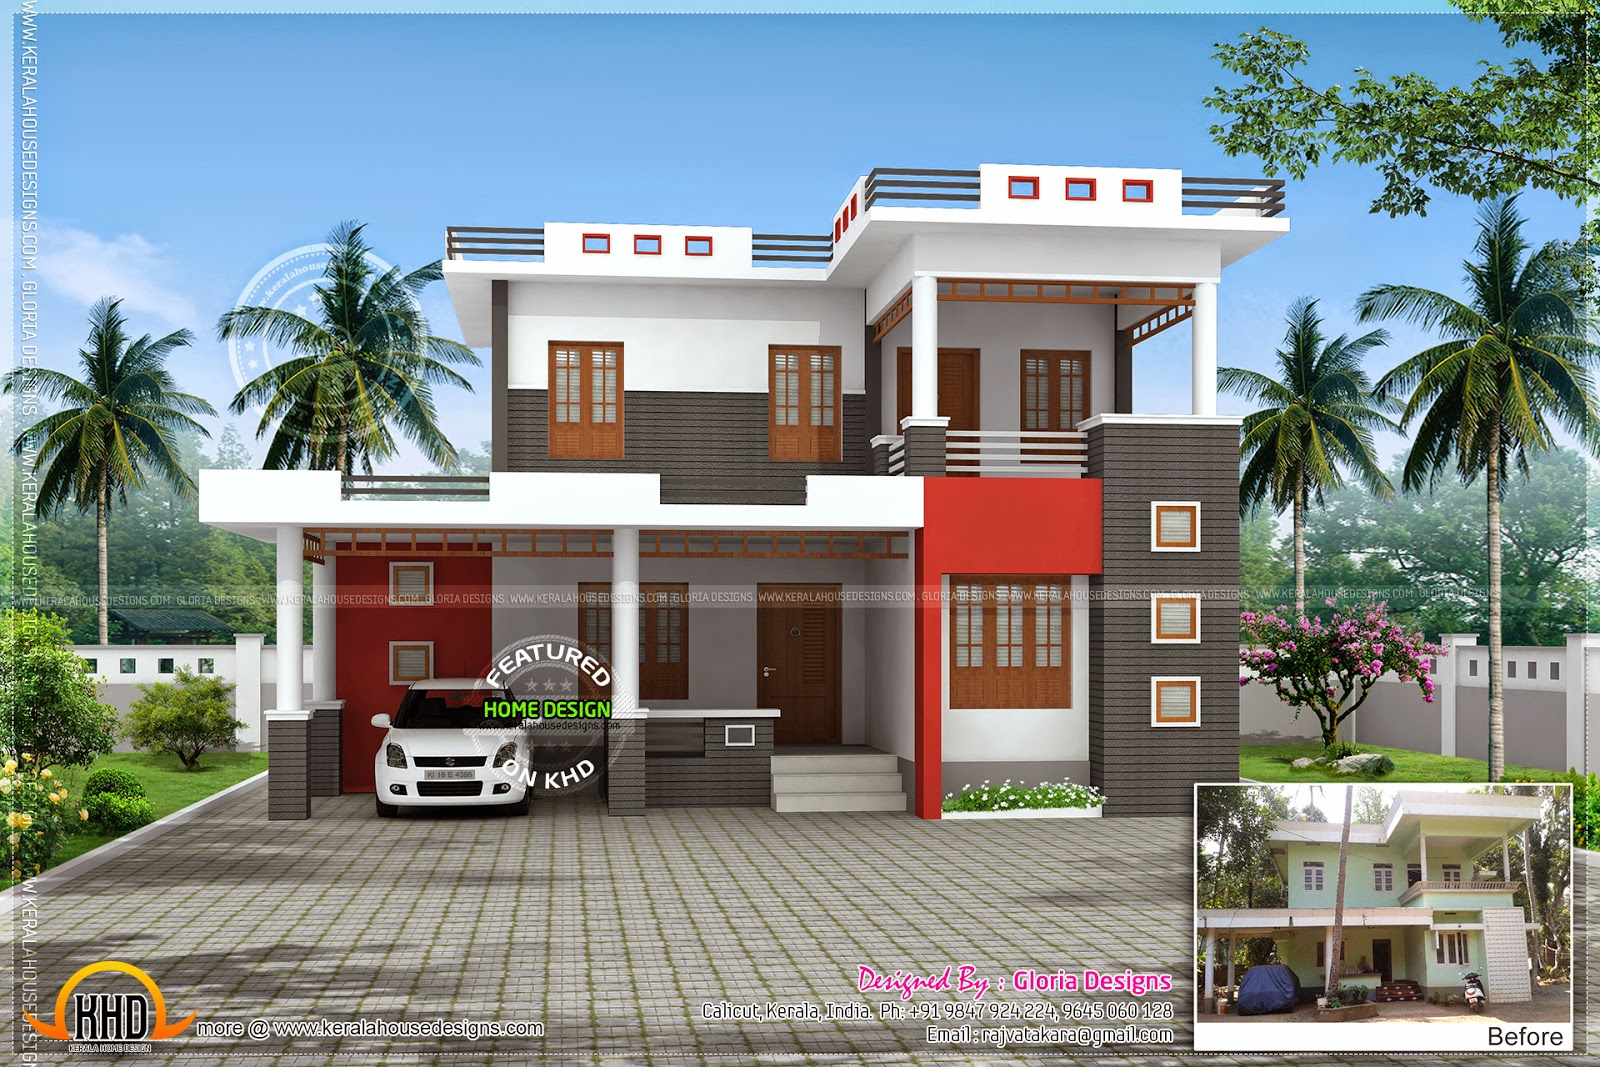 Renovation 3d model for an old house kerala home design for Home models in tamilnadu pictures